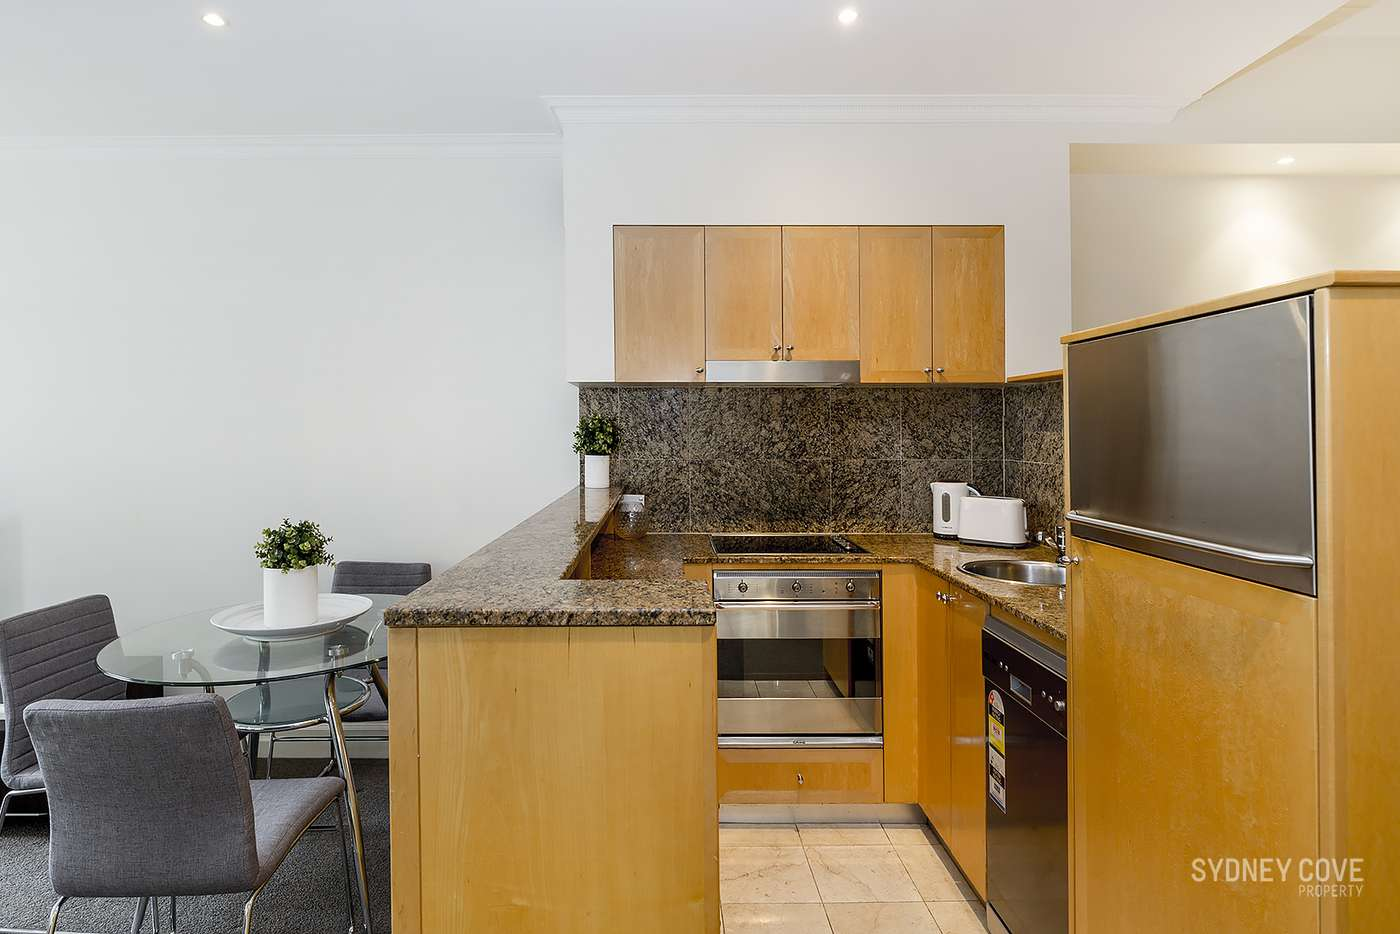 Sixth view of Homely studio listing, 2 Bond Street, Sydney NSW 2000